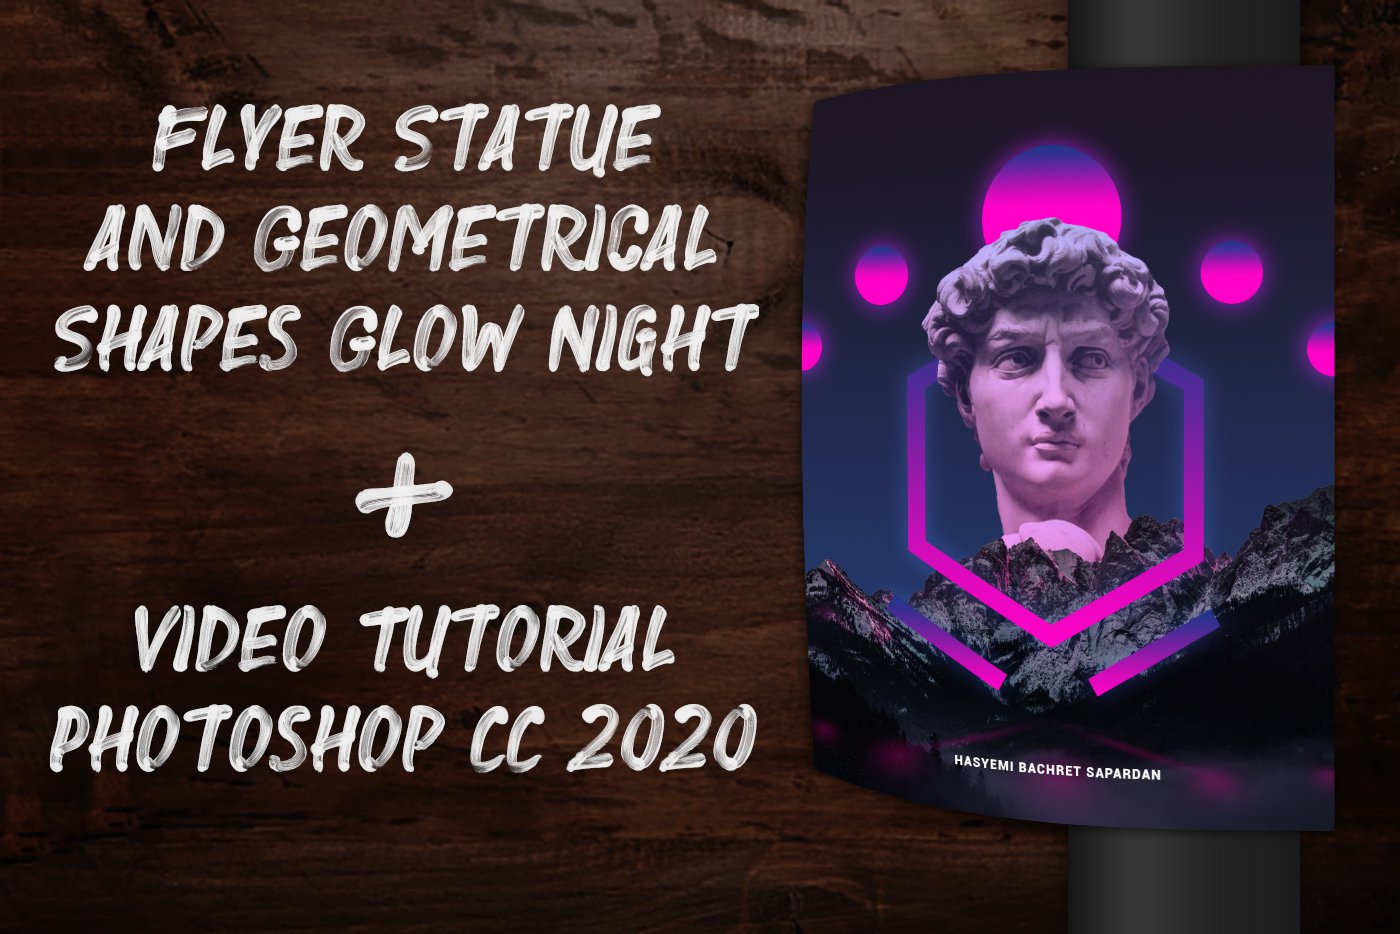 Flyer Statue and Geometrical Shapes Glow Night + Video Tutorial